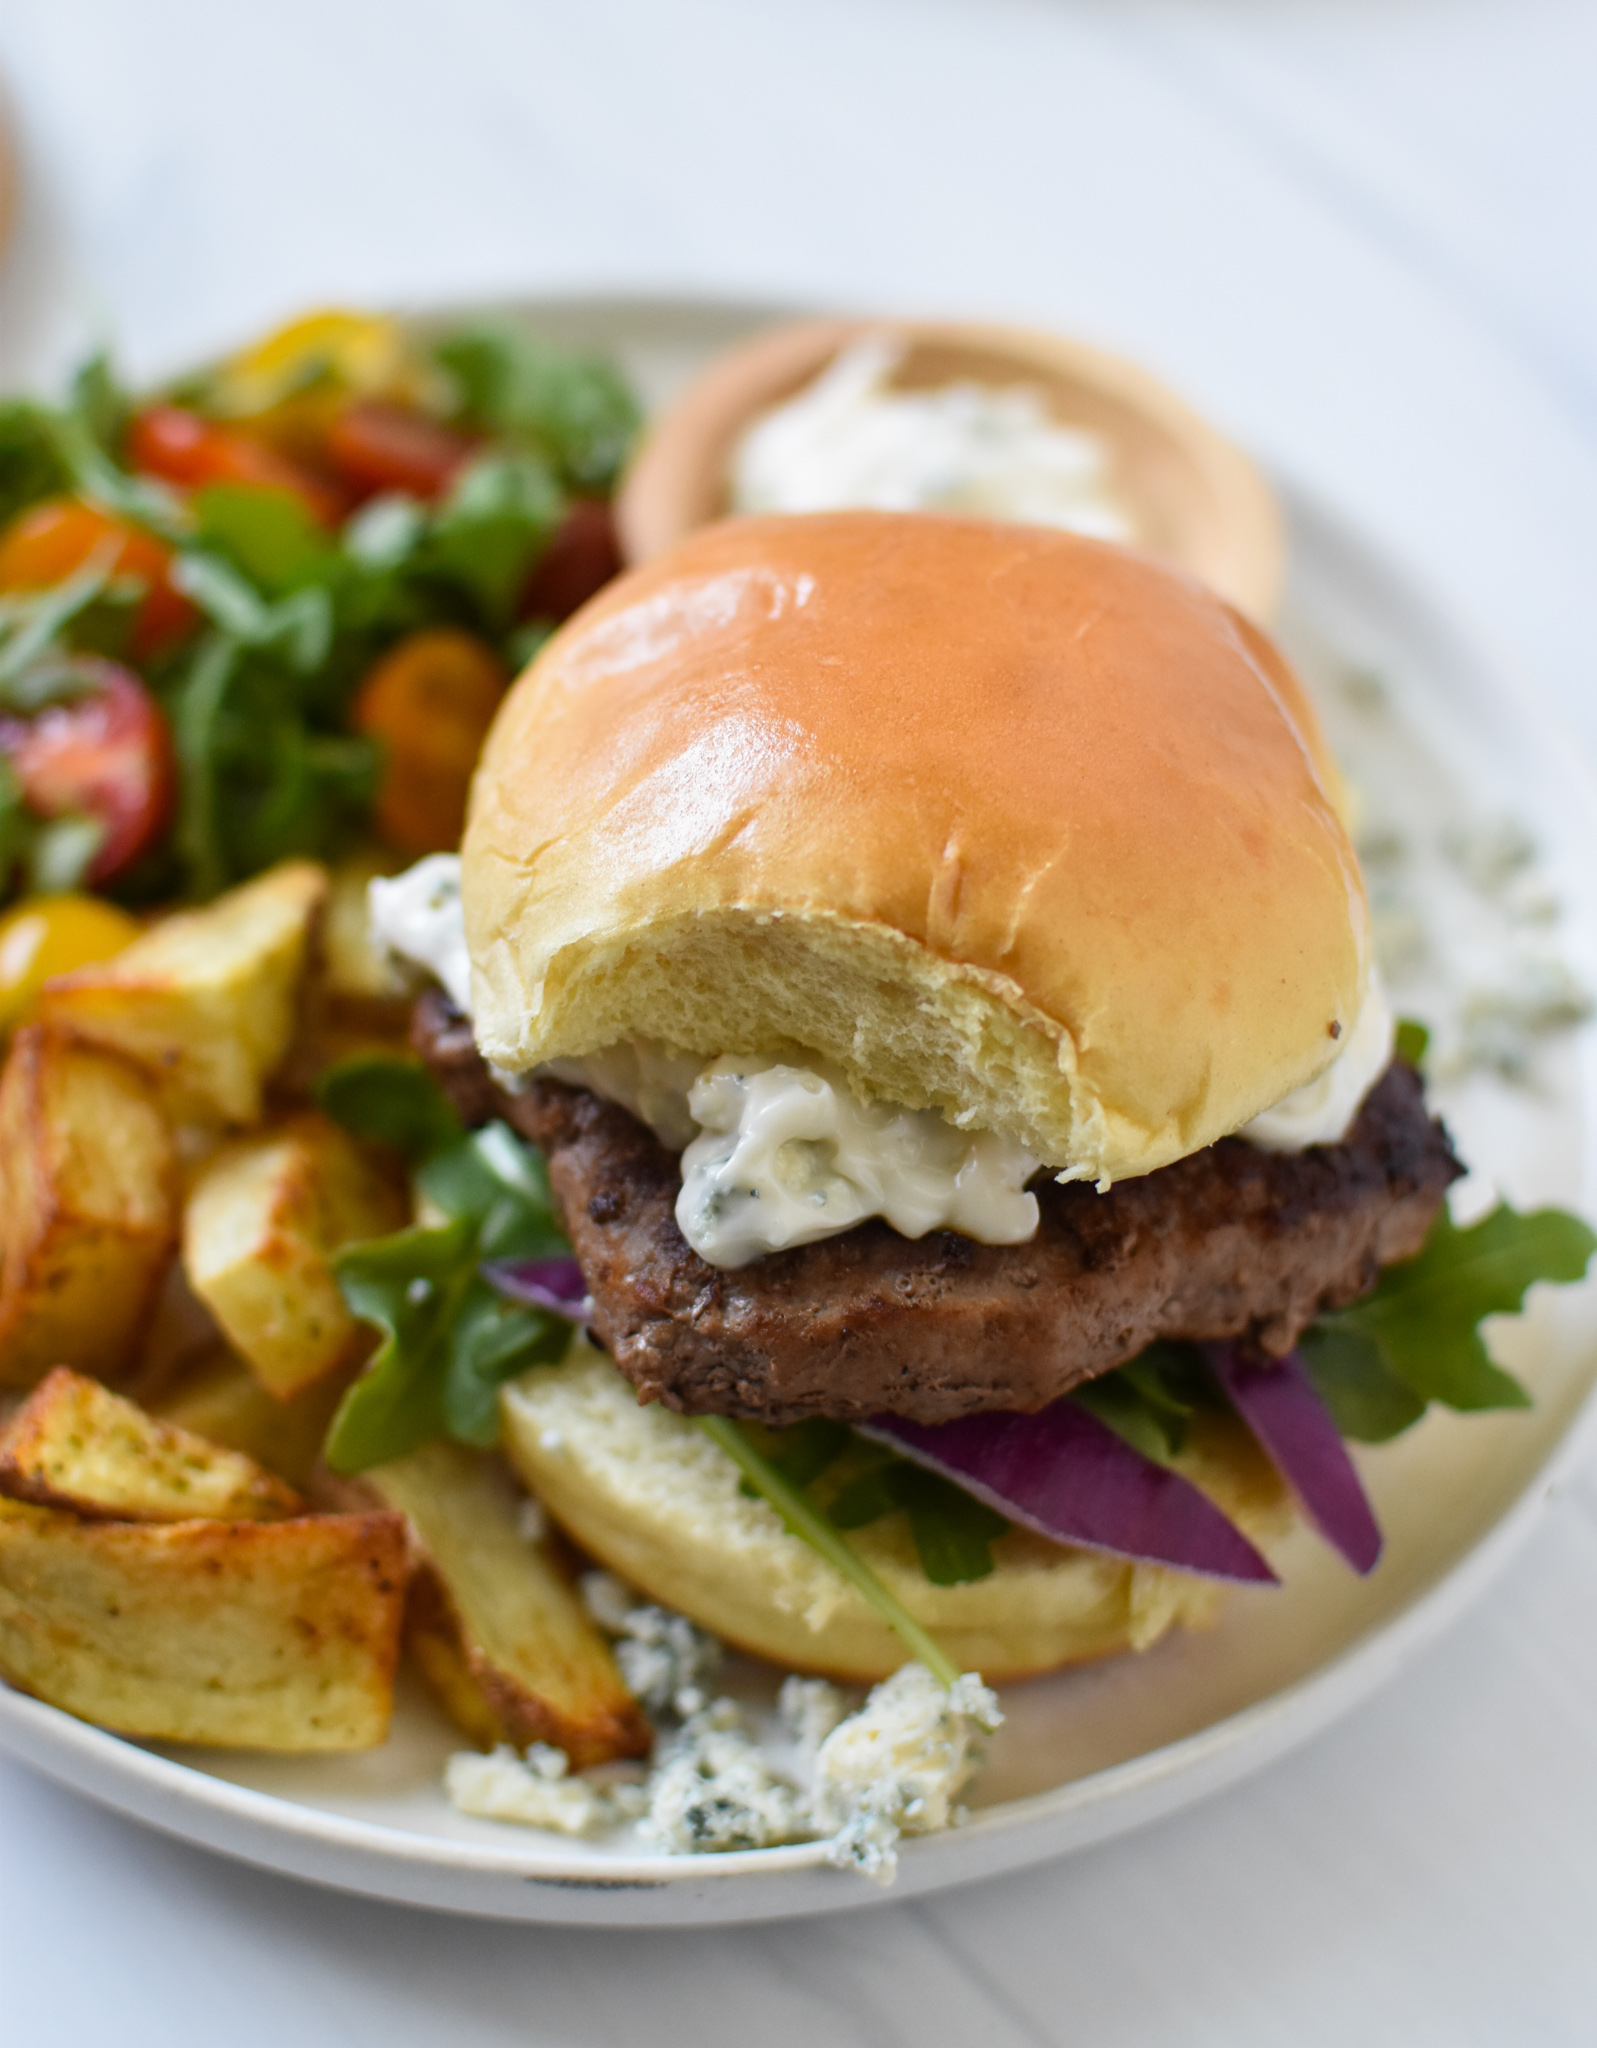 Easy Blue Cheese Burger on a plate.